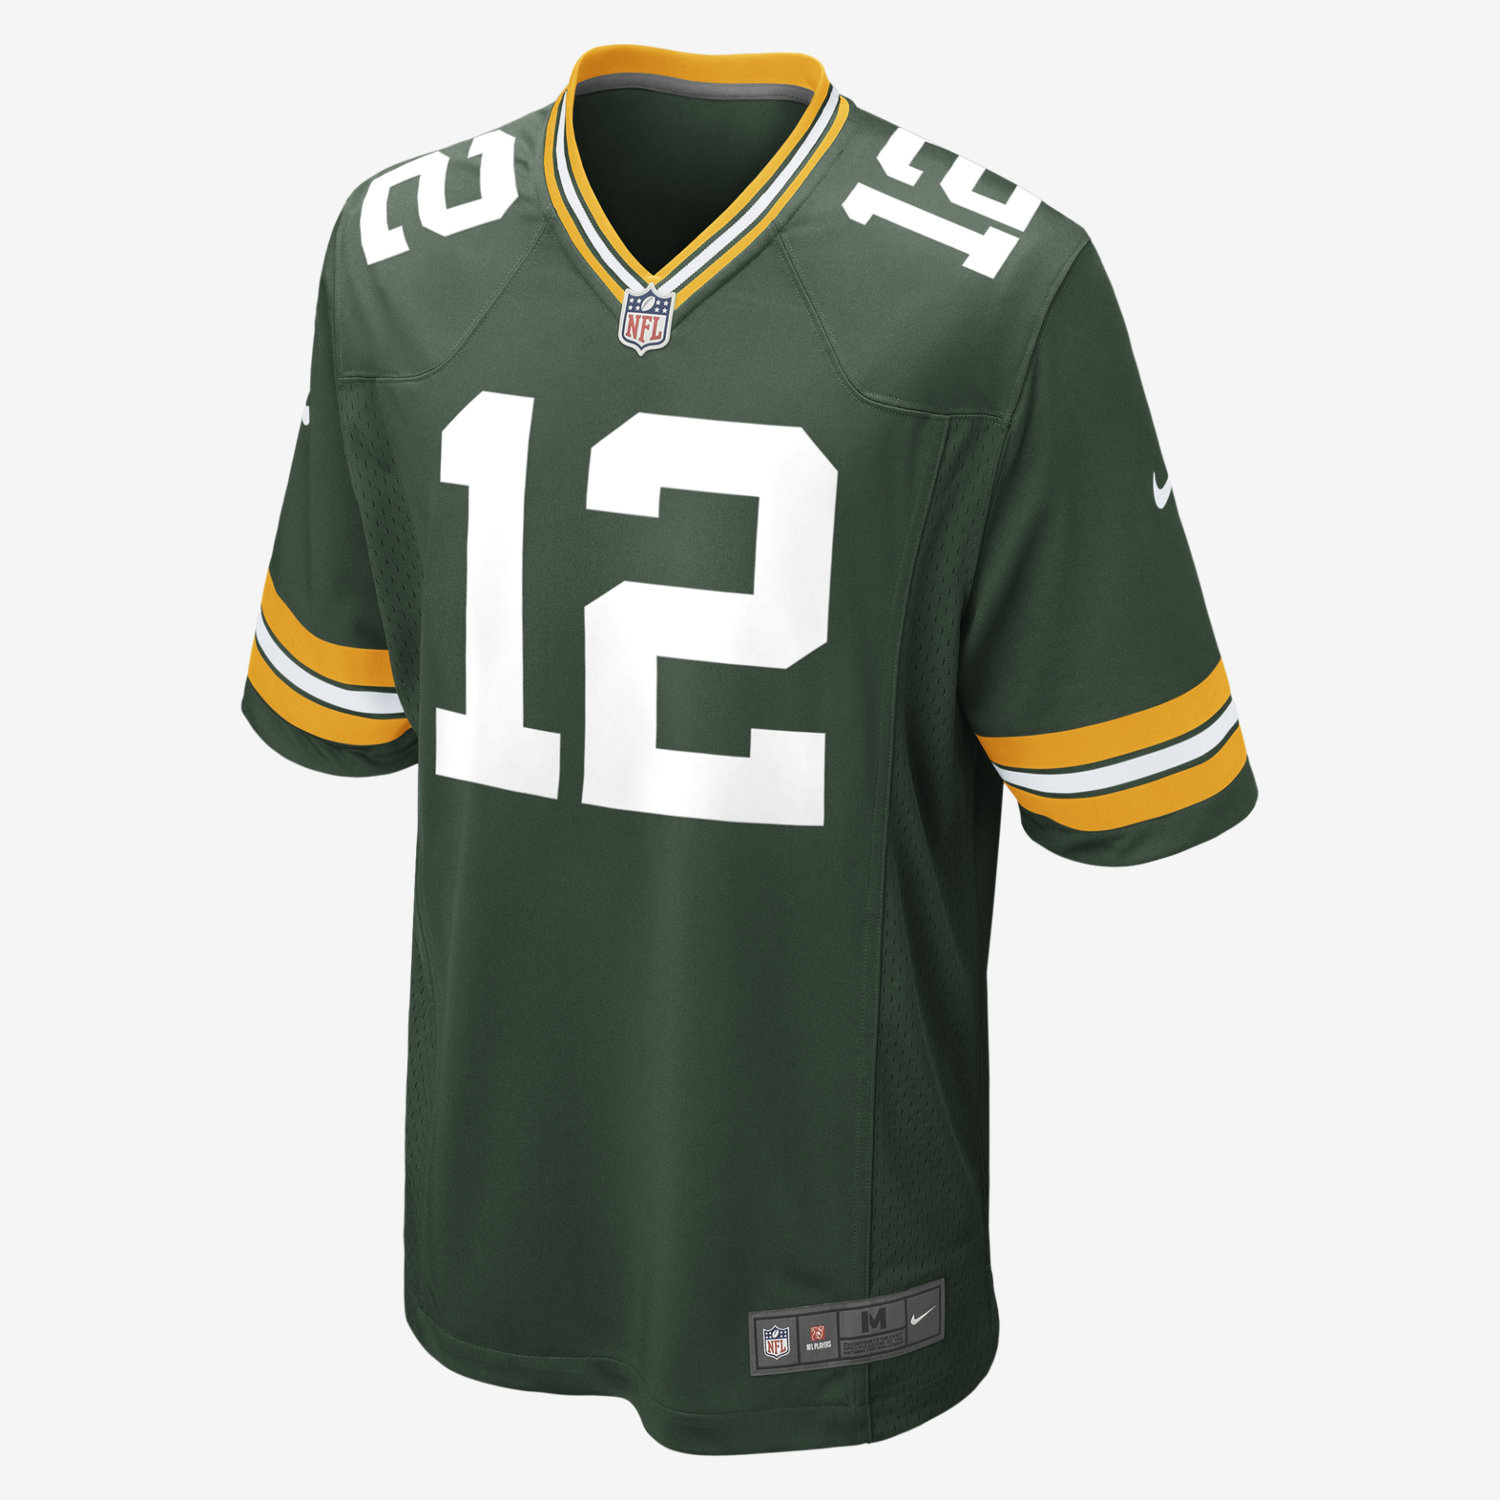 ... 12 Aaron Rodgers Elite Gray Gridiron NFL Jersey NFL Green Bay Packers (Aaron  Rodgers) Kids Football Home Game Jersey. Nike . 3a5651ec3